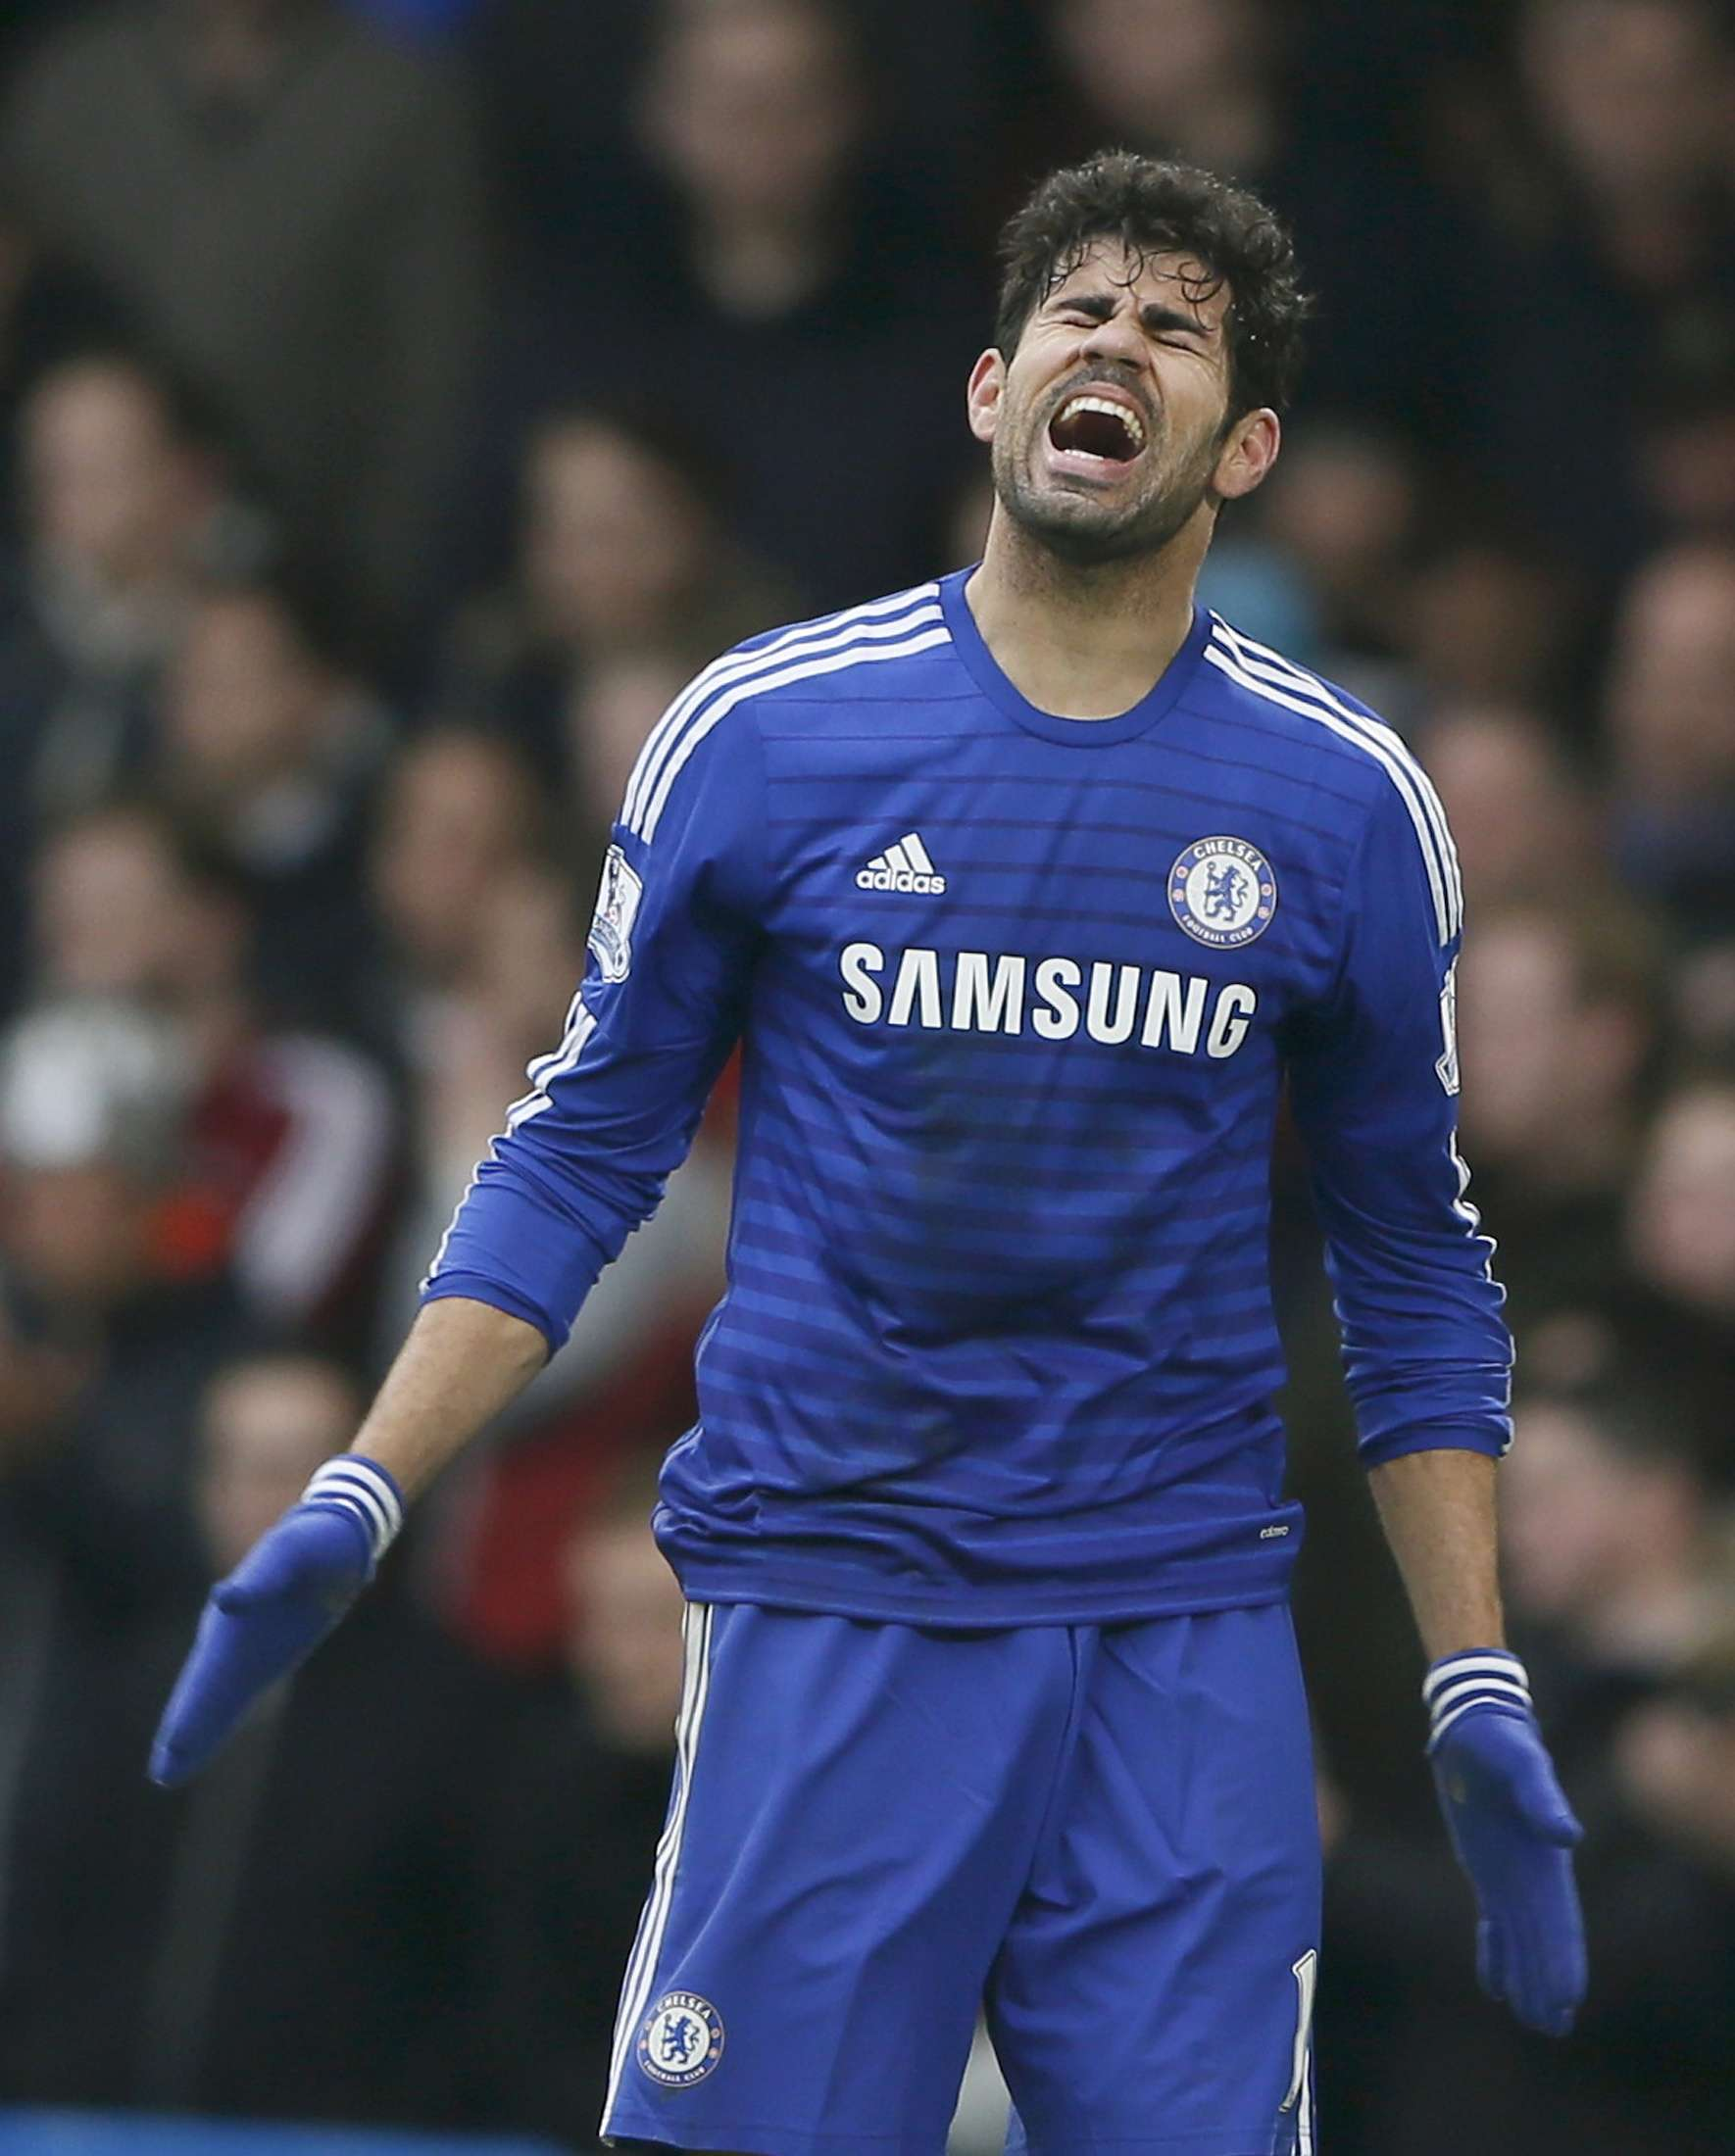 Chelsea's Diego Costa reacts during their English Premier League soccer match against West Ham United at Stamford Bridge in London, December 26, 2014. REUTERS/Stefan Wermuth (BRITAIN - Tags: SOCCER SPORT) FOR EDITORIAL USE ONLY. NOT FOR SALE FOR MARKETING OR ADVERTISING CAMPAIGNS. EDITORIAL USE ONLY. NO USE WITH UNAUTHORIZED AUDIO, VIDEO, DATA, FIXTURE LISTS, CLUB/LEAGUE LOGOS OR 'LIVE' SERVICES. ONLINE IN-MATCH USE LIMITED TO 45 IMAGES, NO VIDEO EMULATION. NO USE IN BETTING, GAMES OR SINGLE CLUB/LEAGUE/PLAYER PUBLICATIONS. Foto: STEFAN WERMUTH/REUTERS